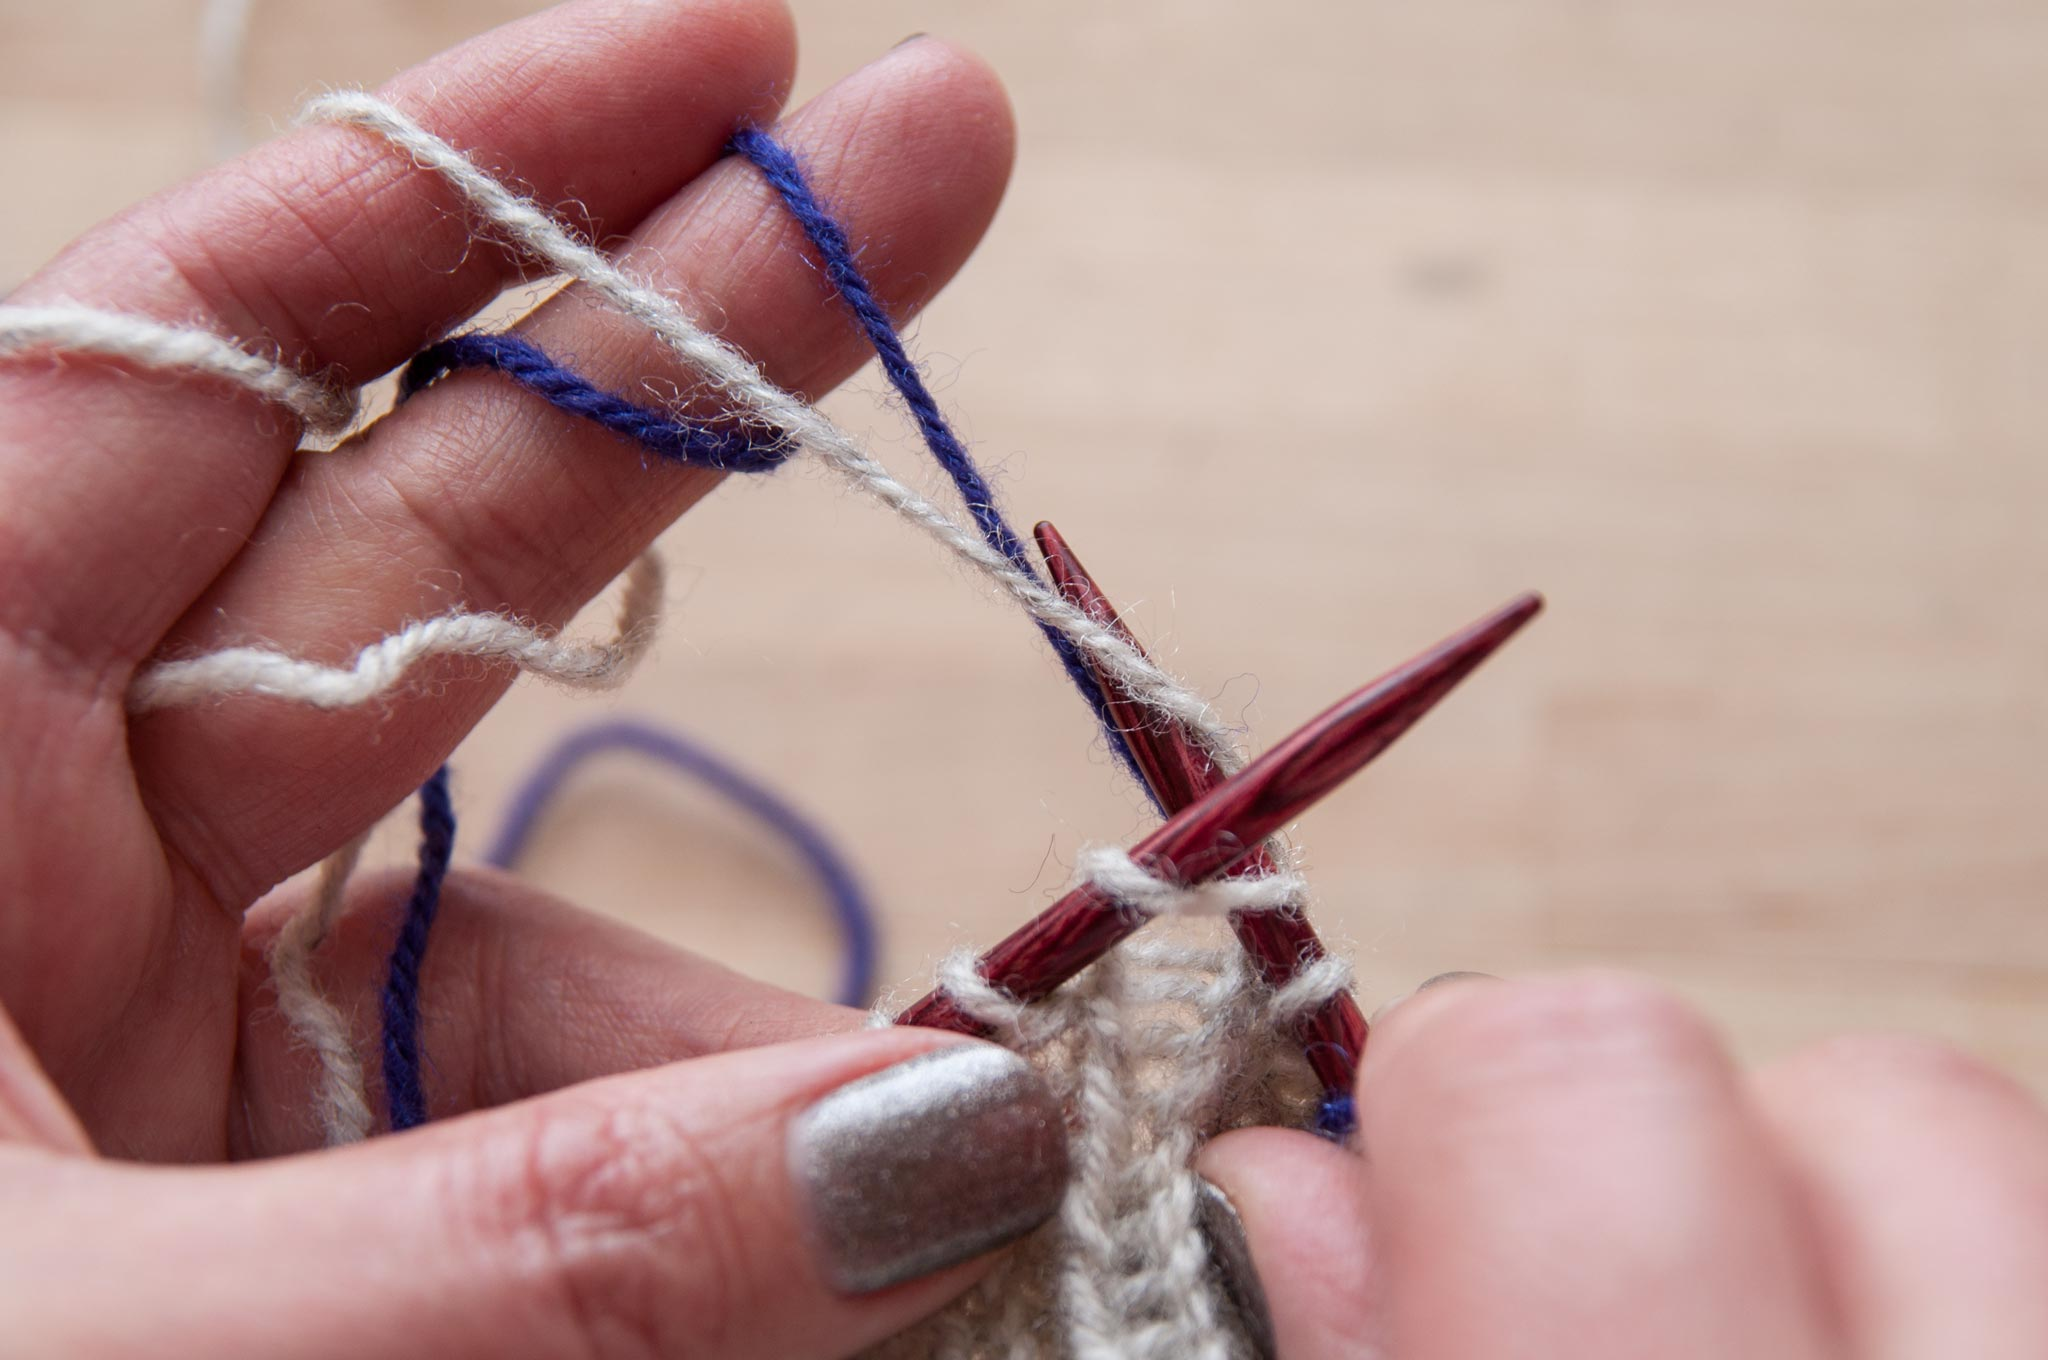 Move the right needle tip below the background colour to pull up a new stitch in the foreground colour.